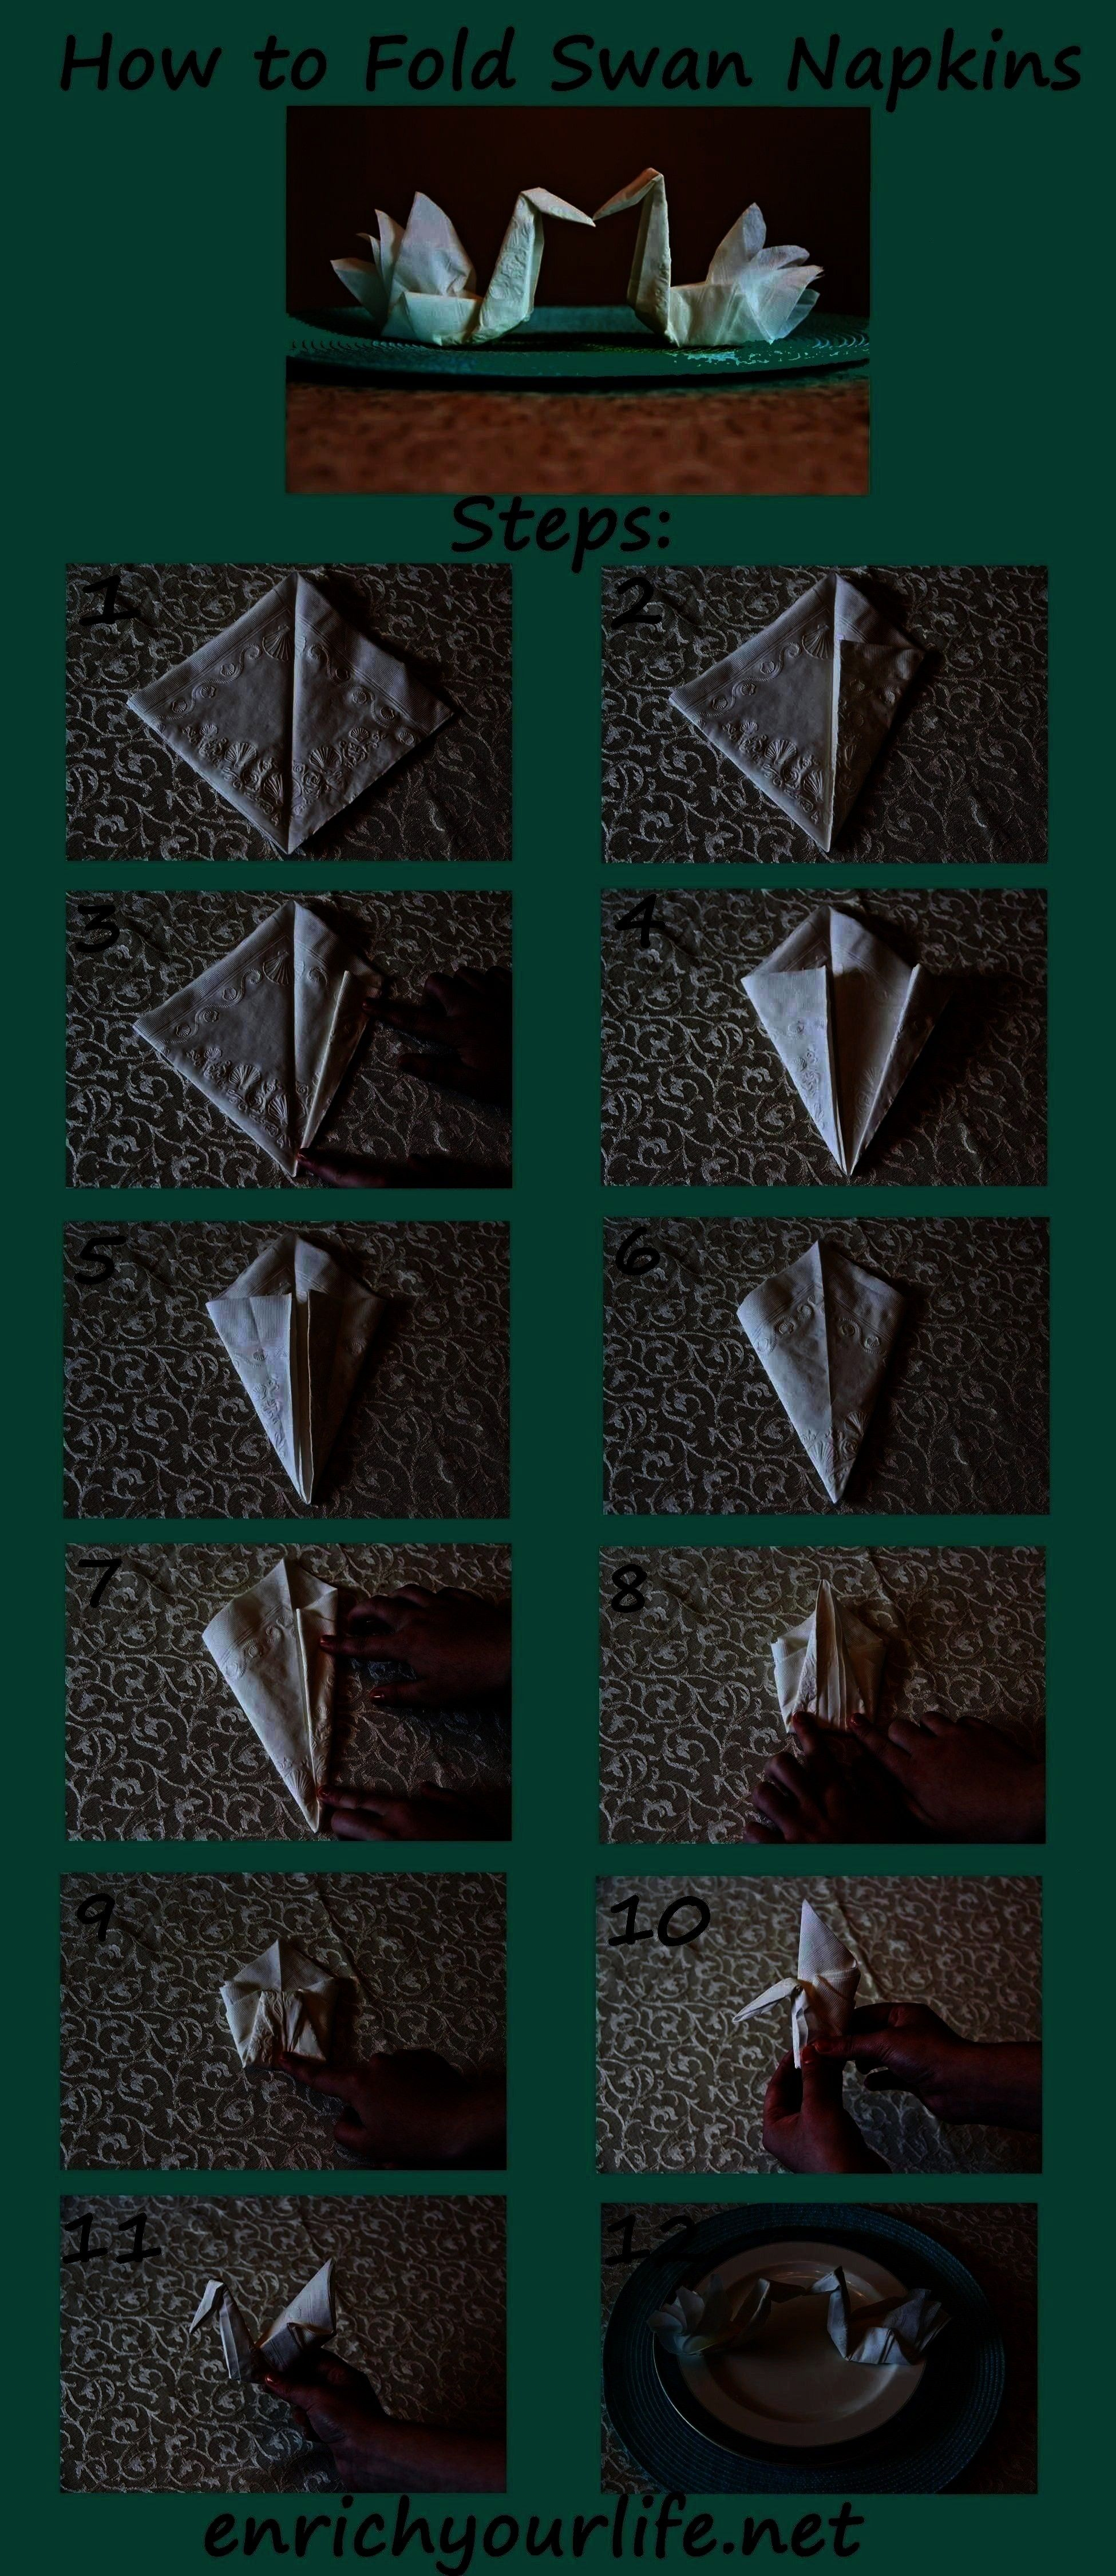 by Step enrichyourlife01 How to Fold a Swan Napkin Step by Step enrichyourlife01 Diy AbschnittHow to Fold a Swan Napkin Step by Step enrichyourlife01 Diy Abschnittto Fold...